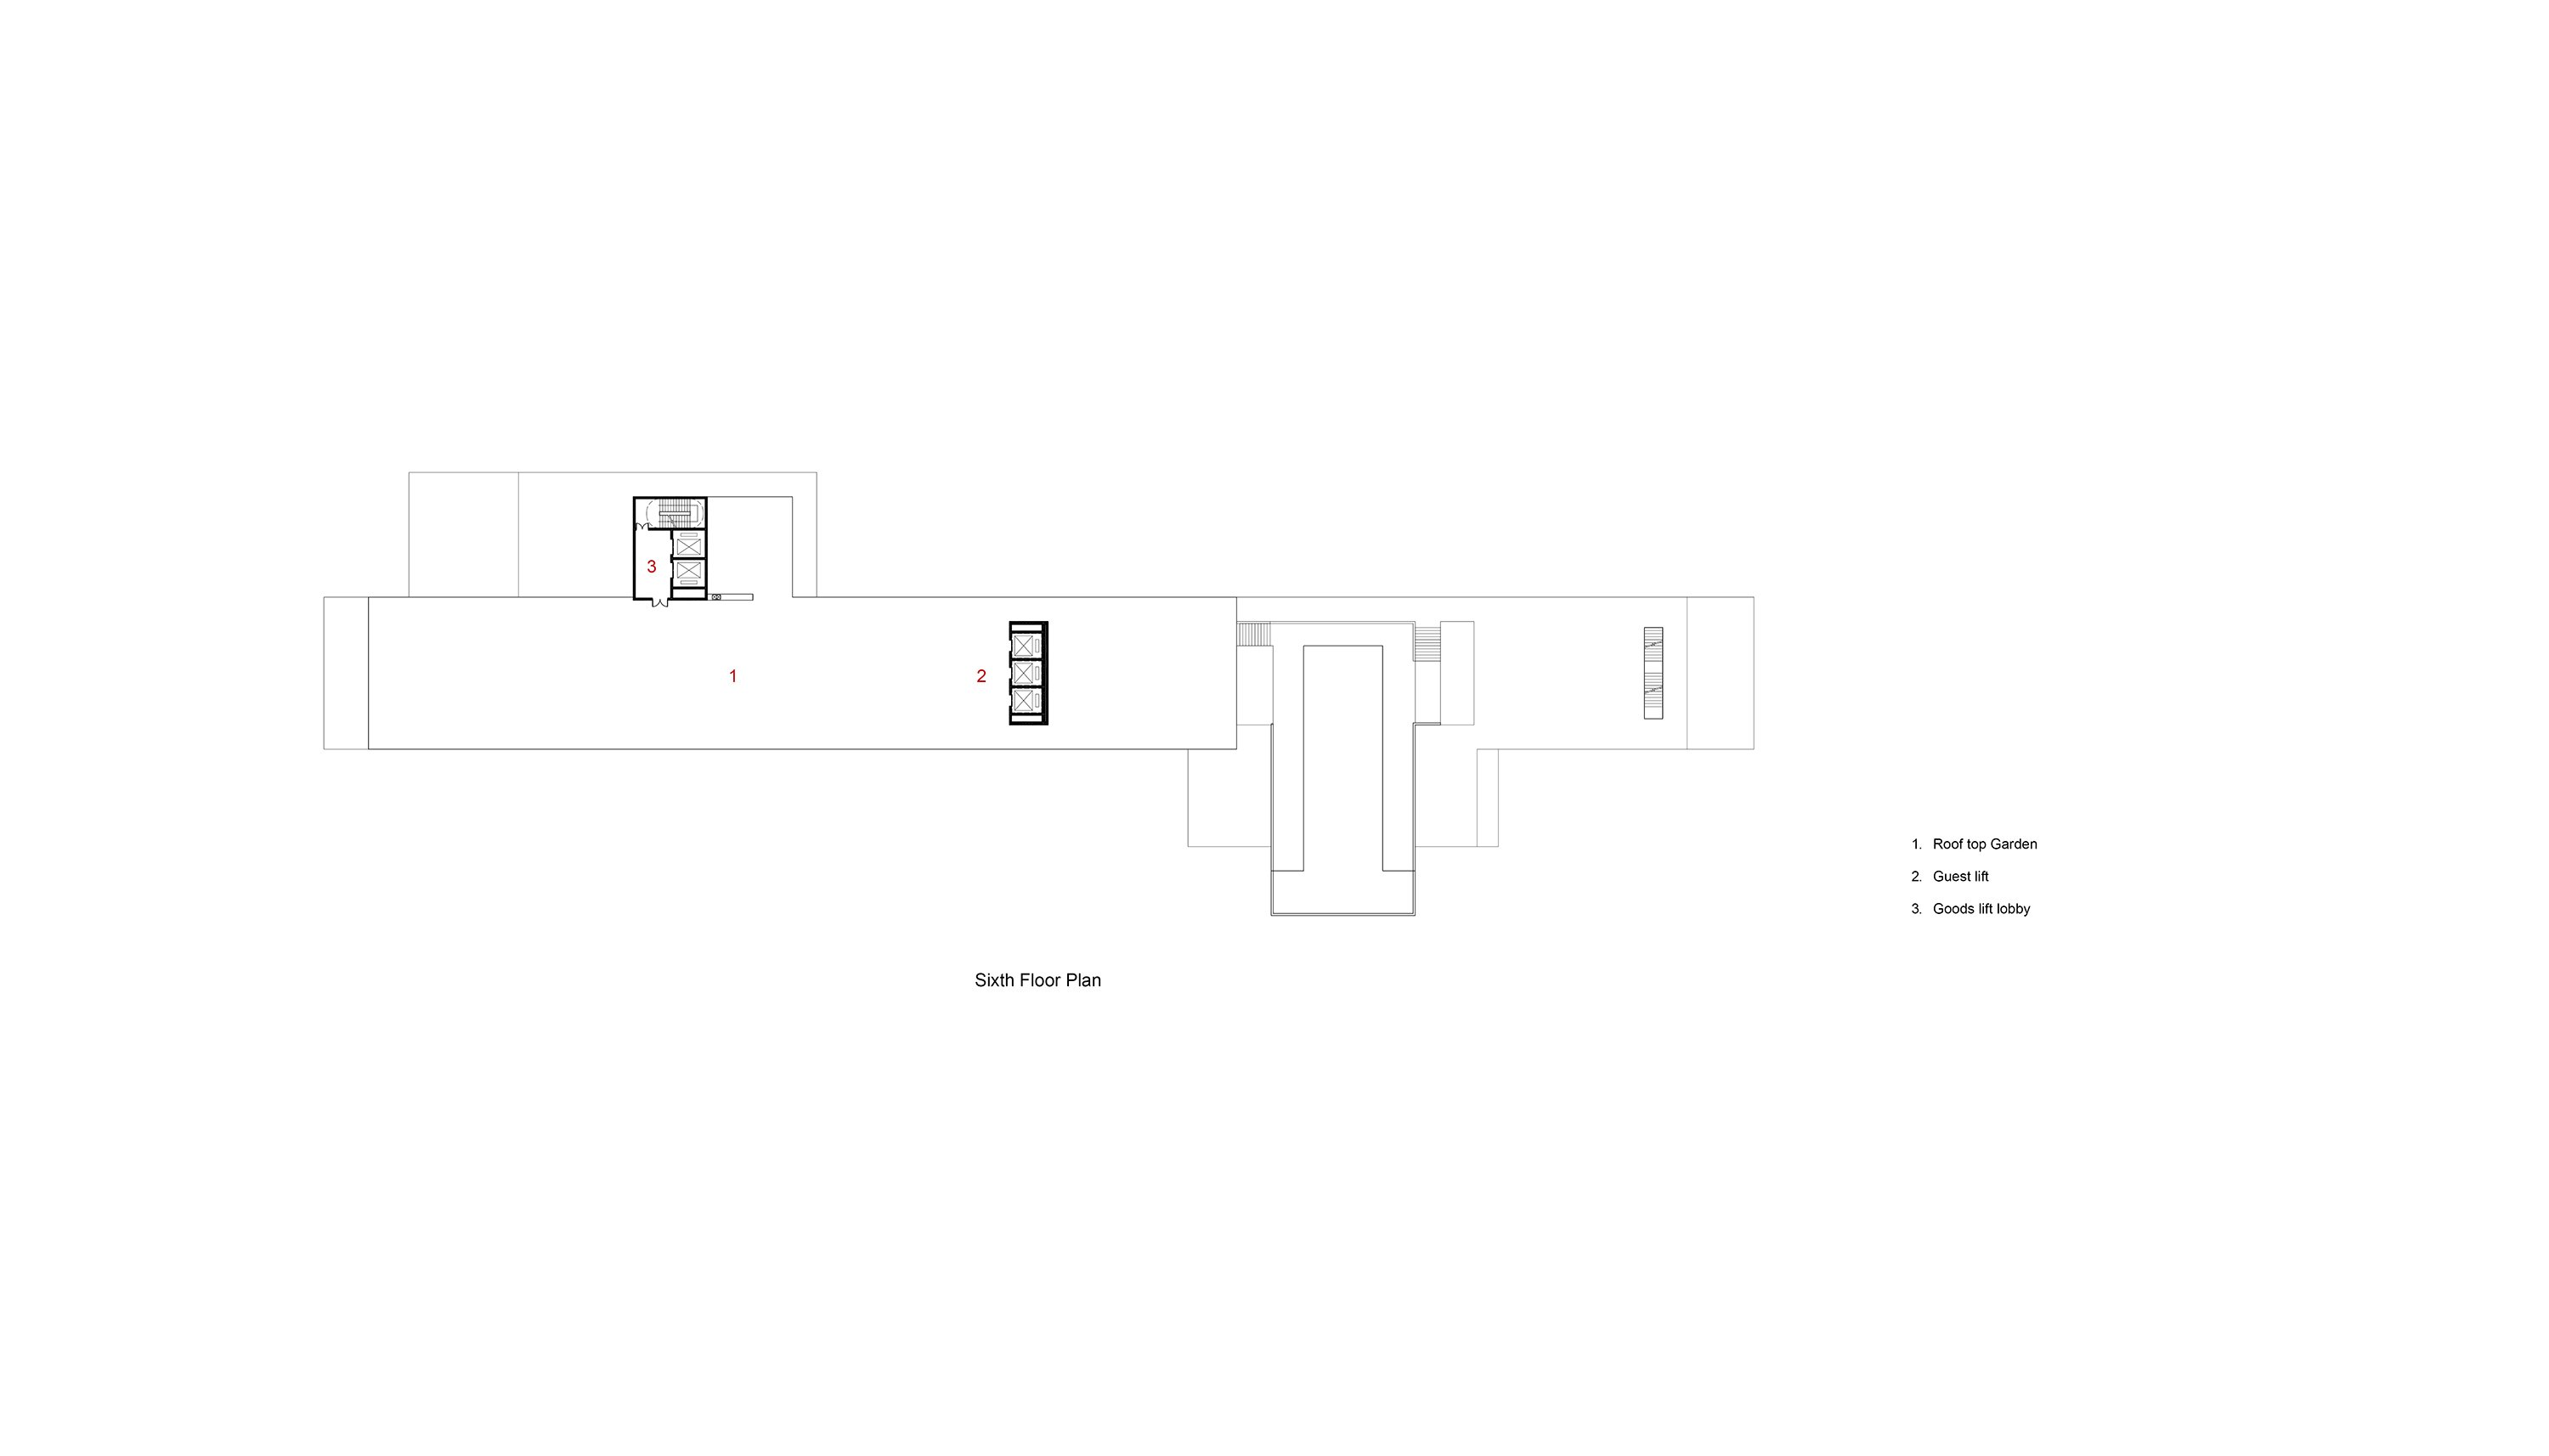 Sixth Floor Plan Studio A+}